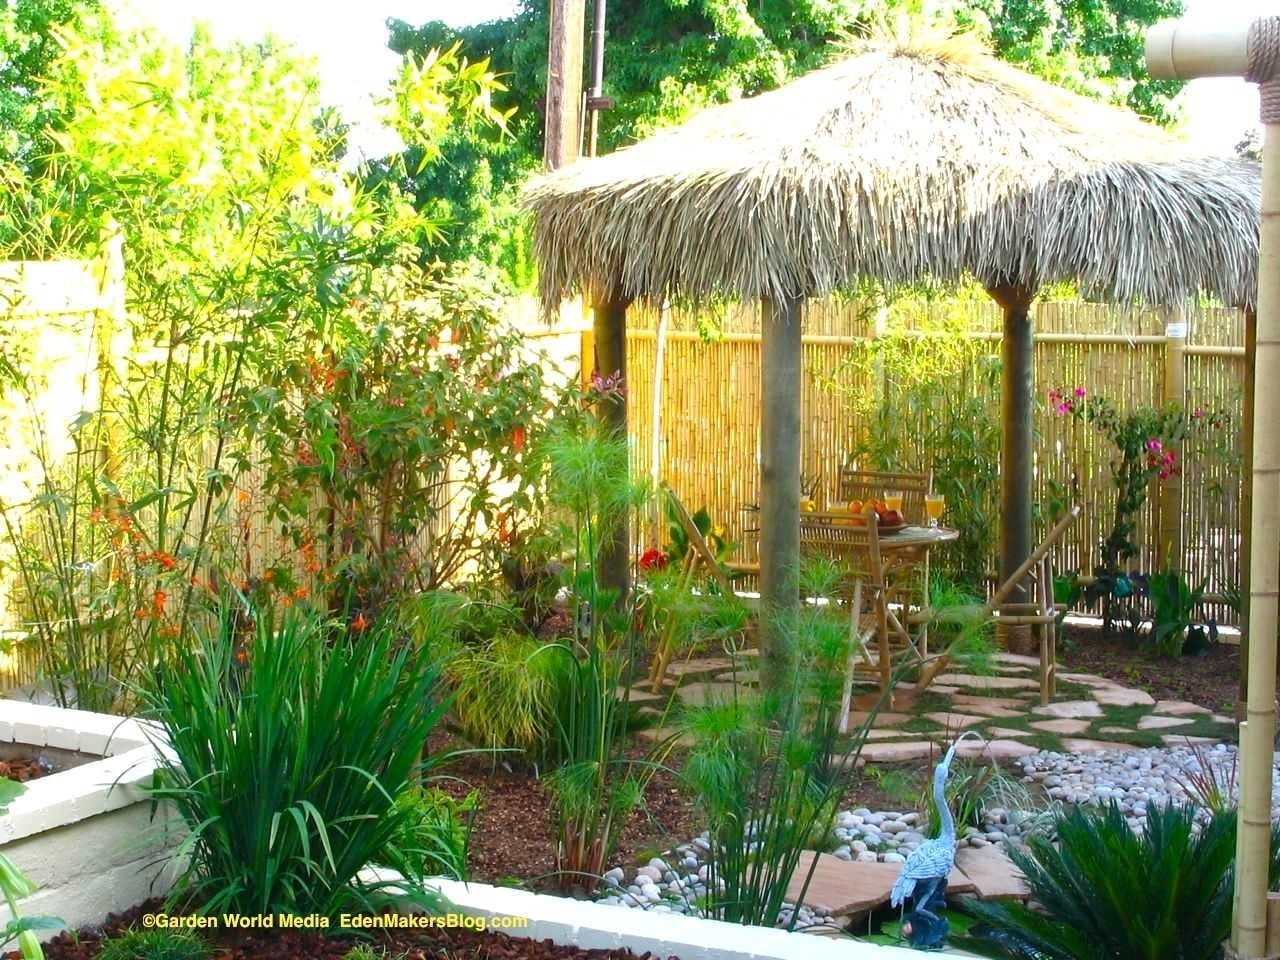 10 Attractive Tropical Landscaping Ideas For Front Yard fascinating tropical landscape ideas small yards and front yard 2020